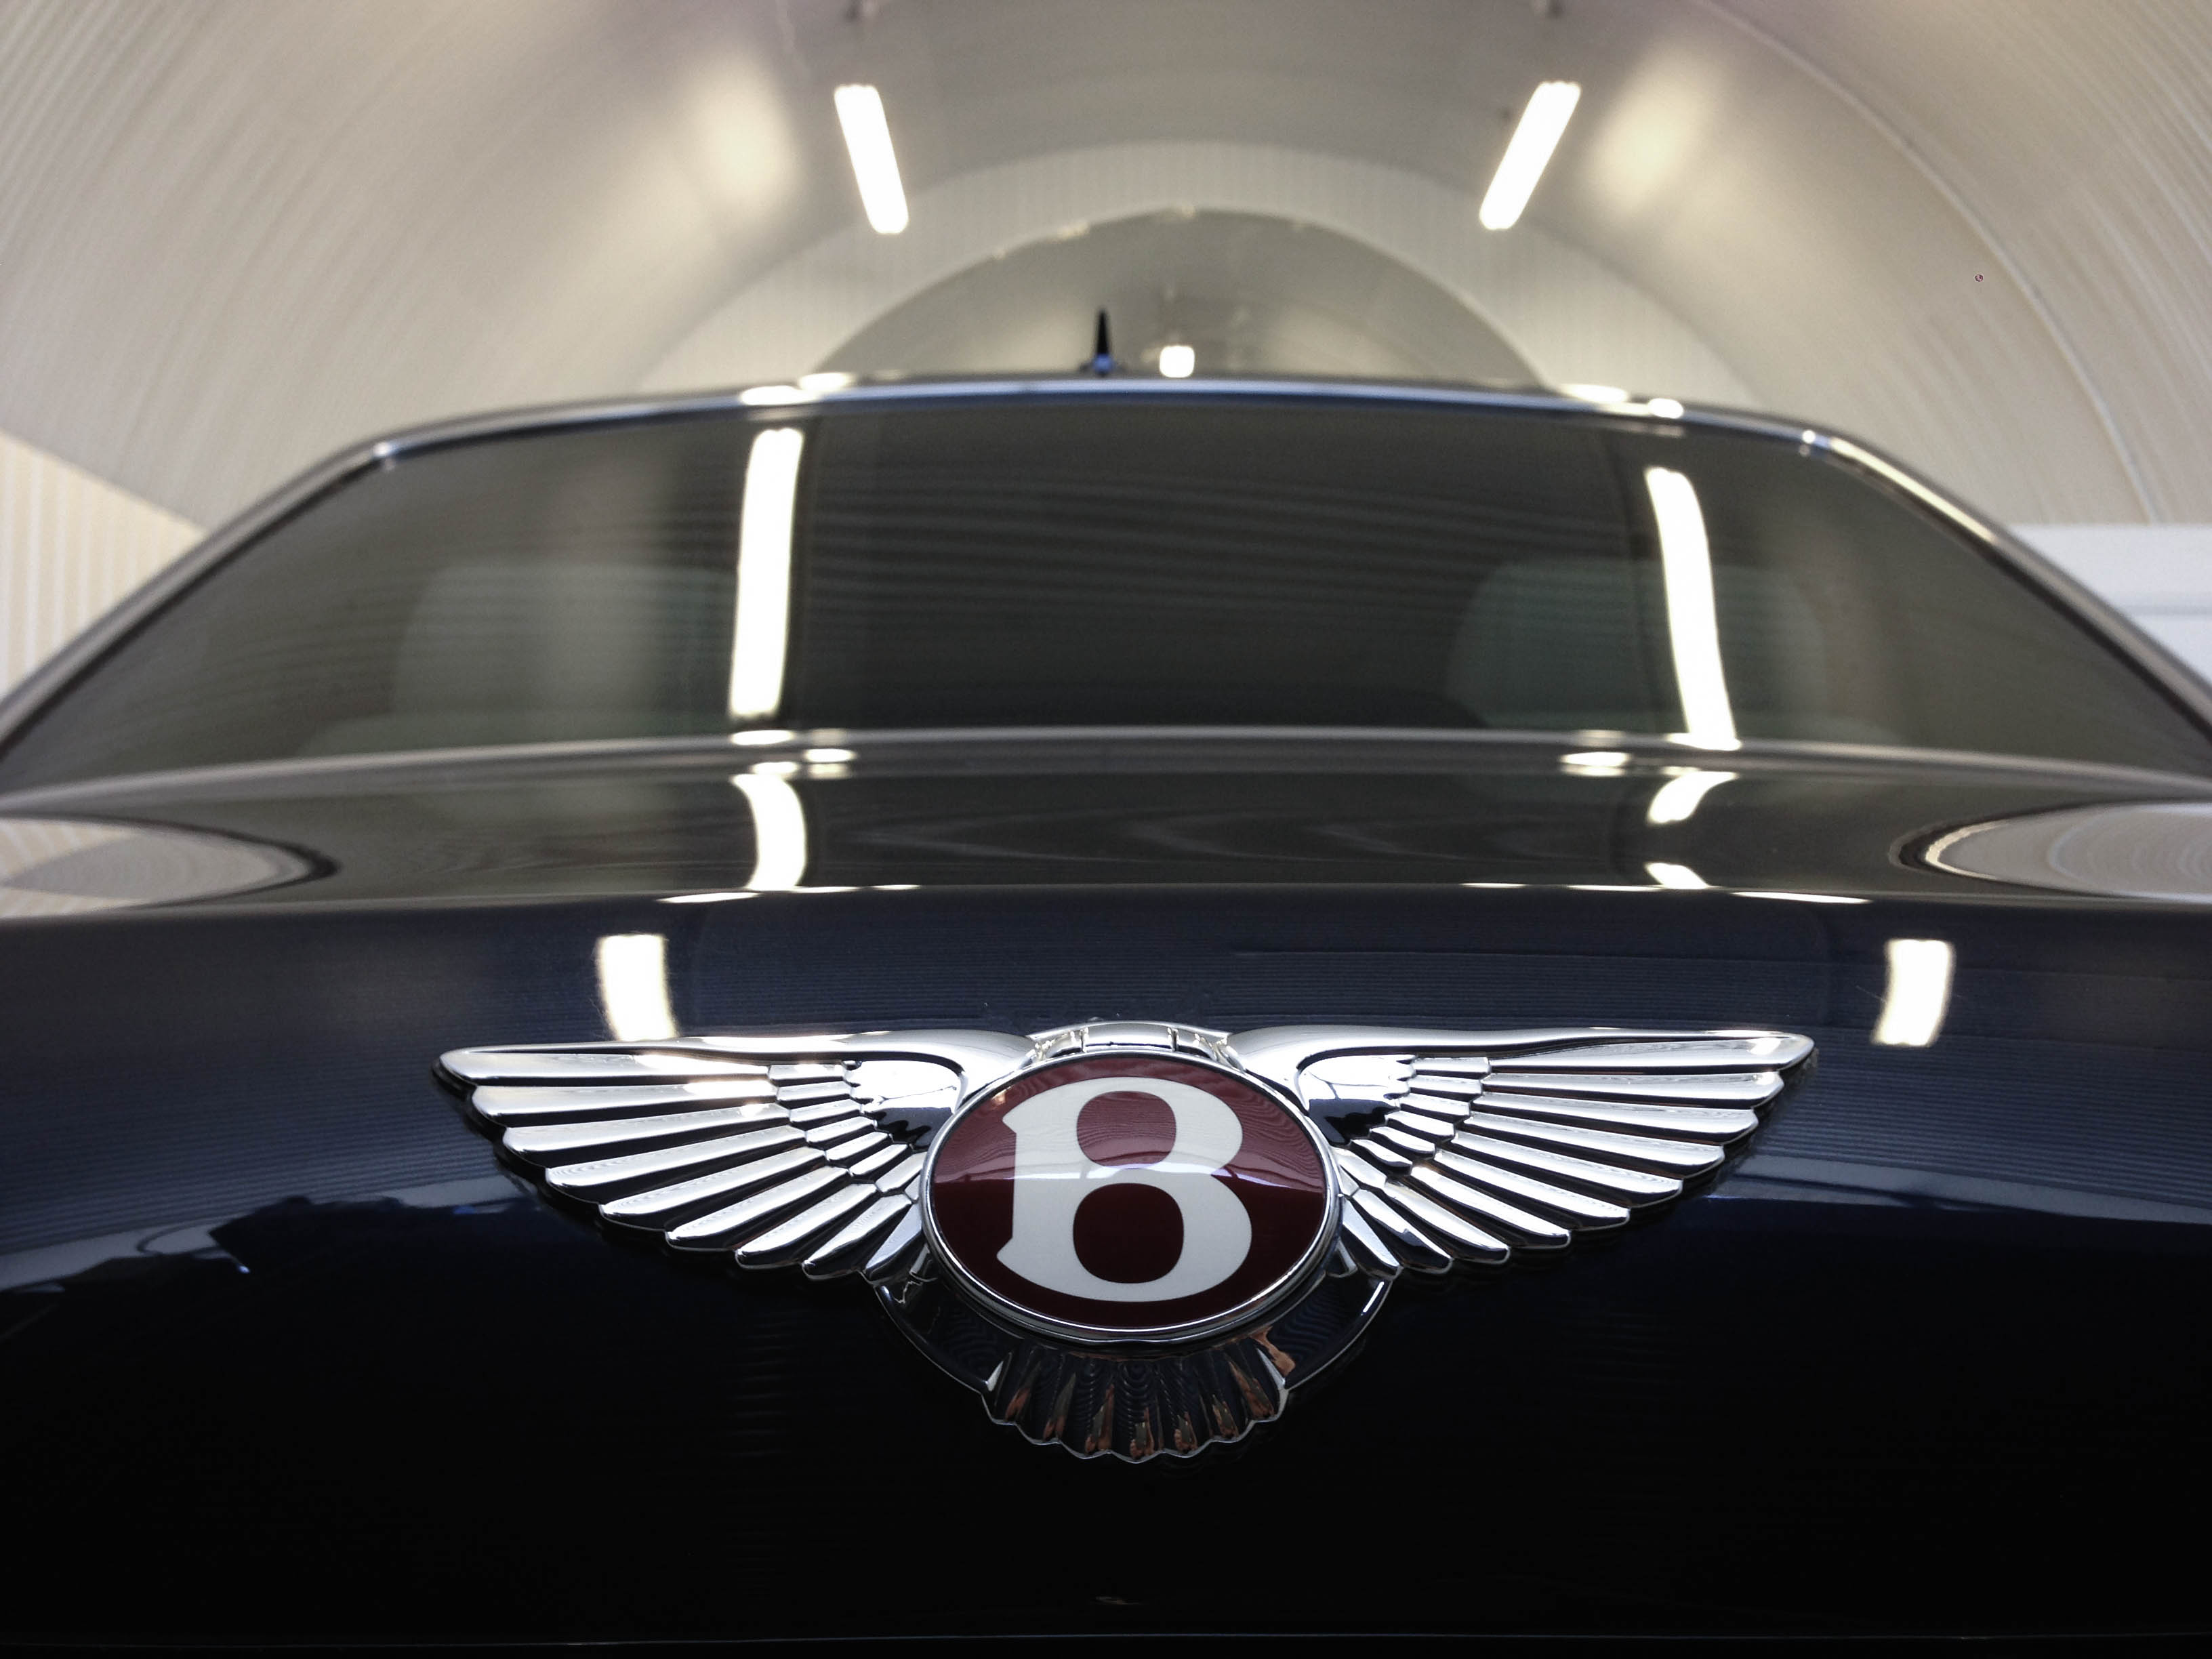 Bentley Arnage – Badge